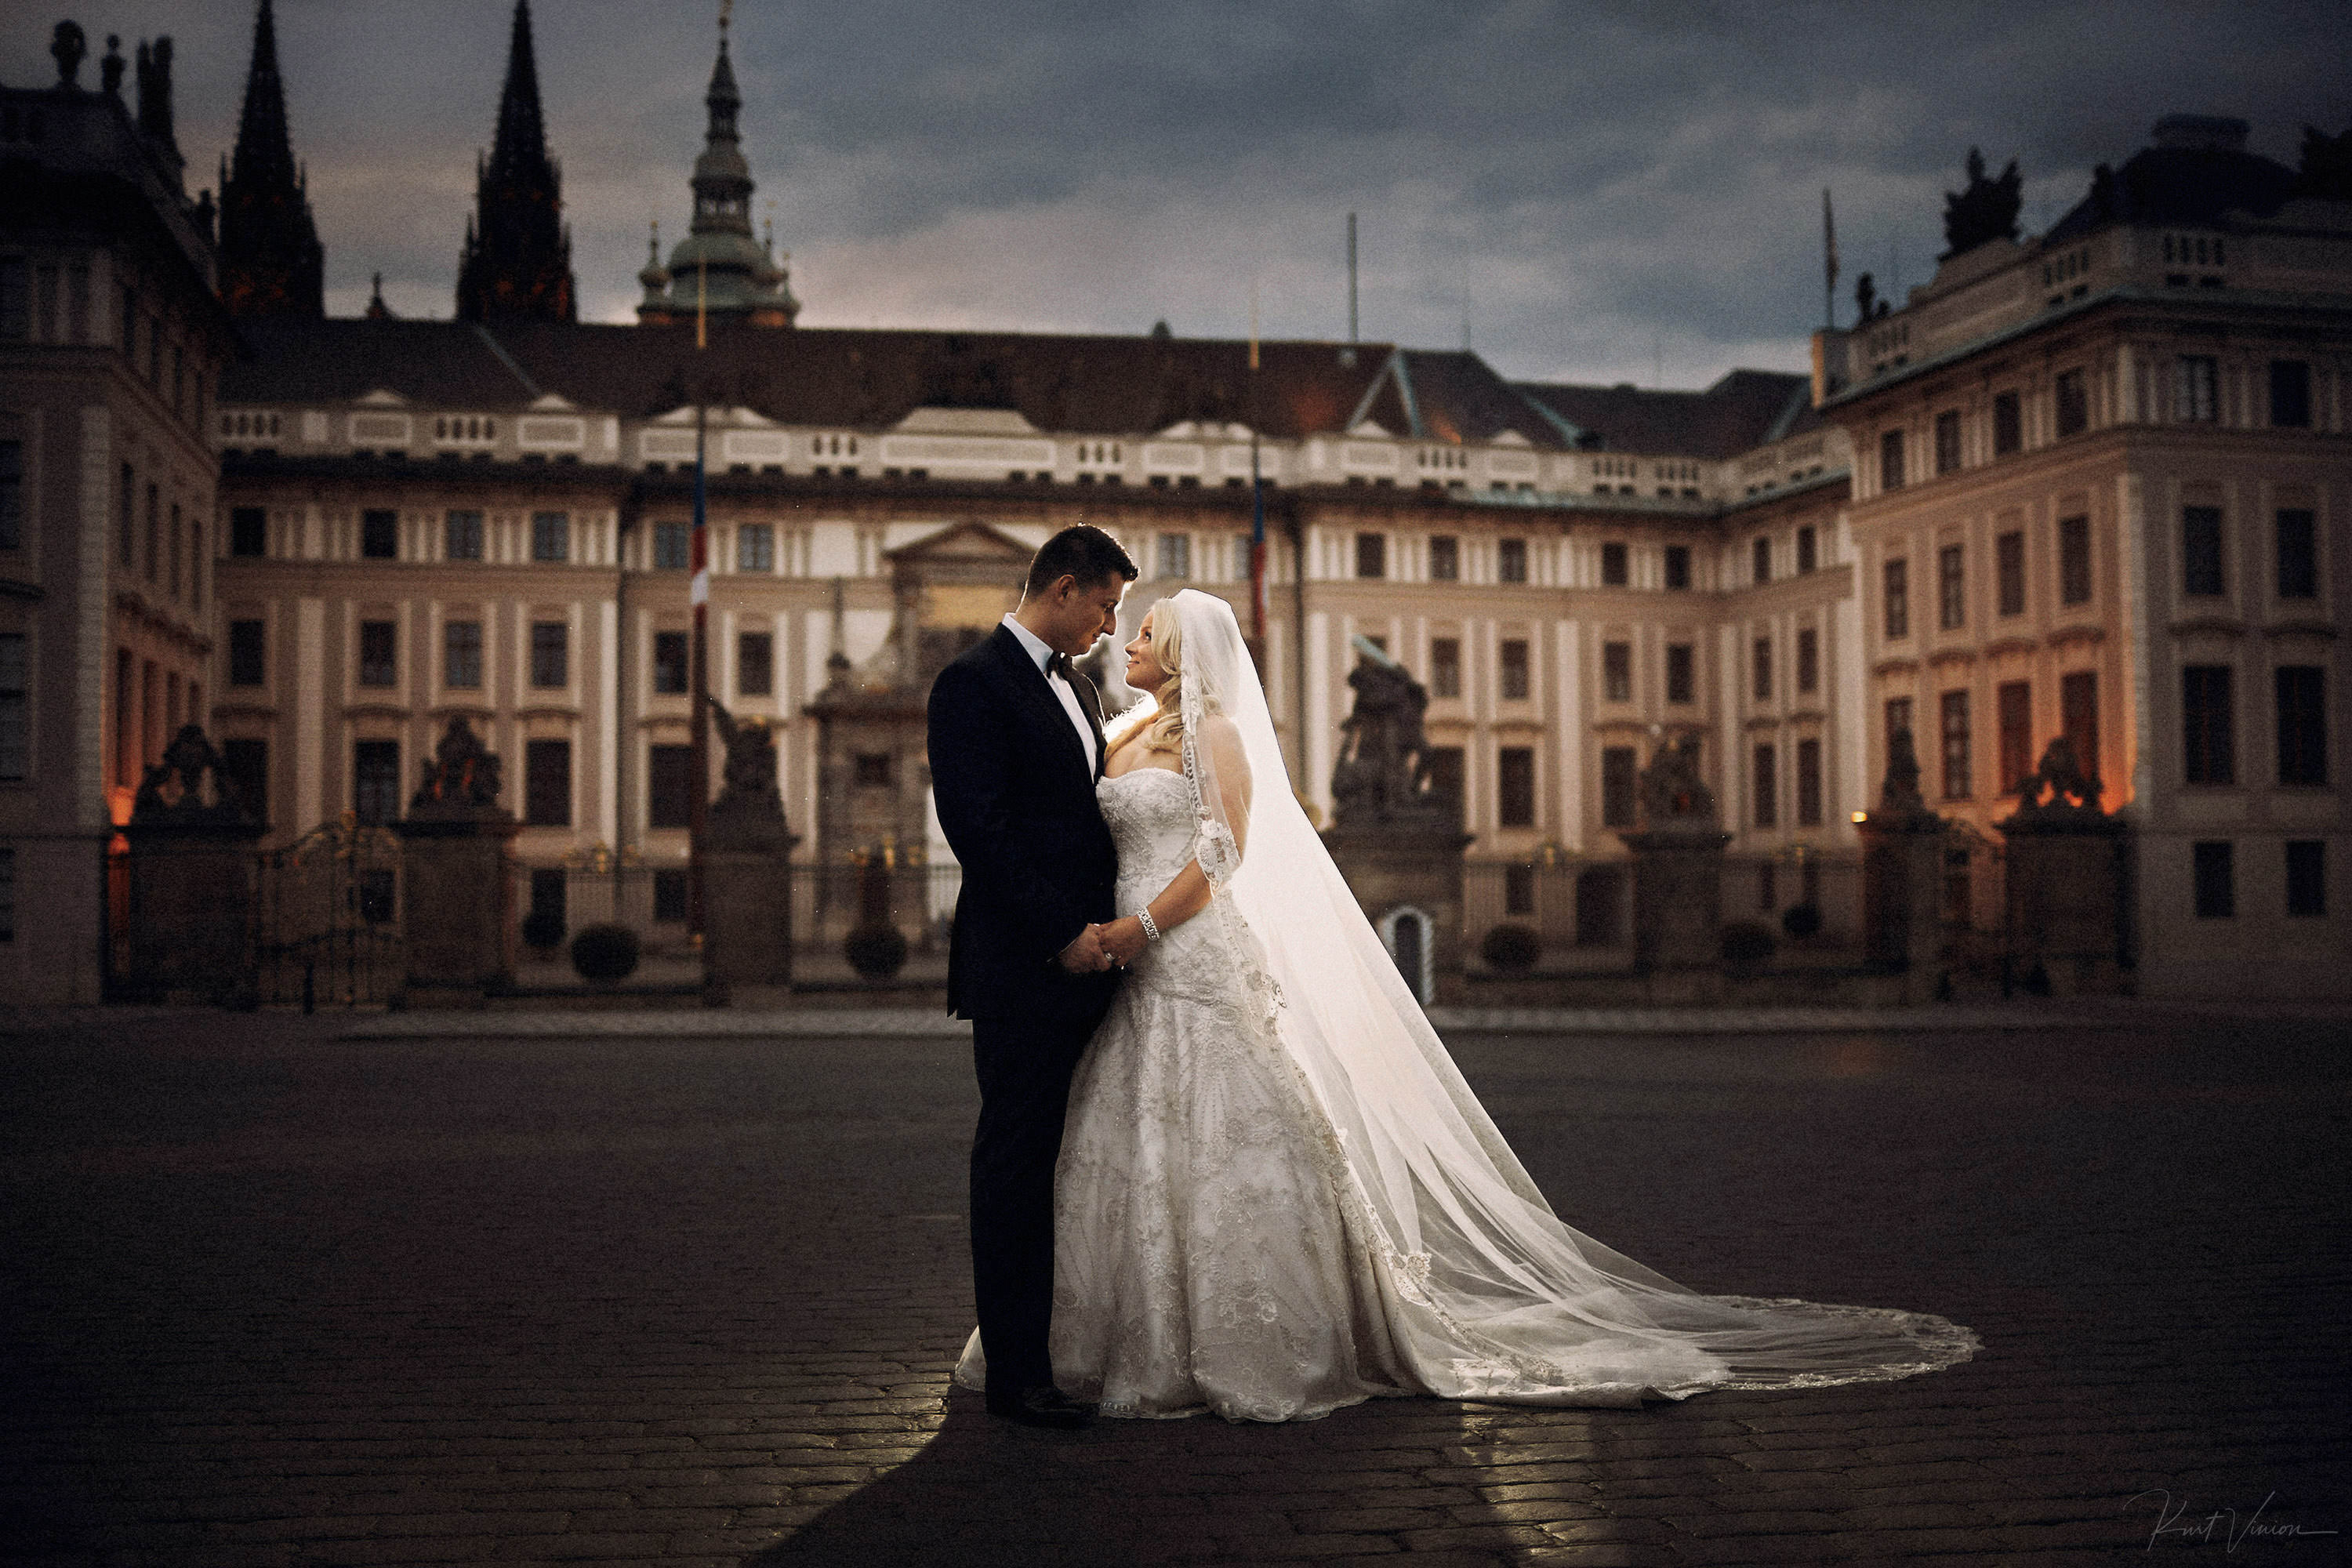 How to successfully plan your Prague destination wedding during COVID-19